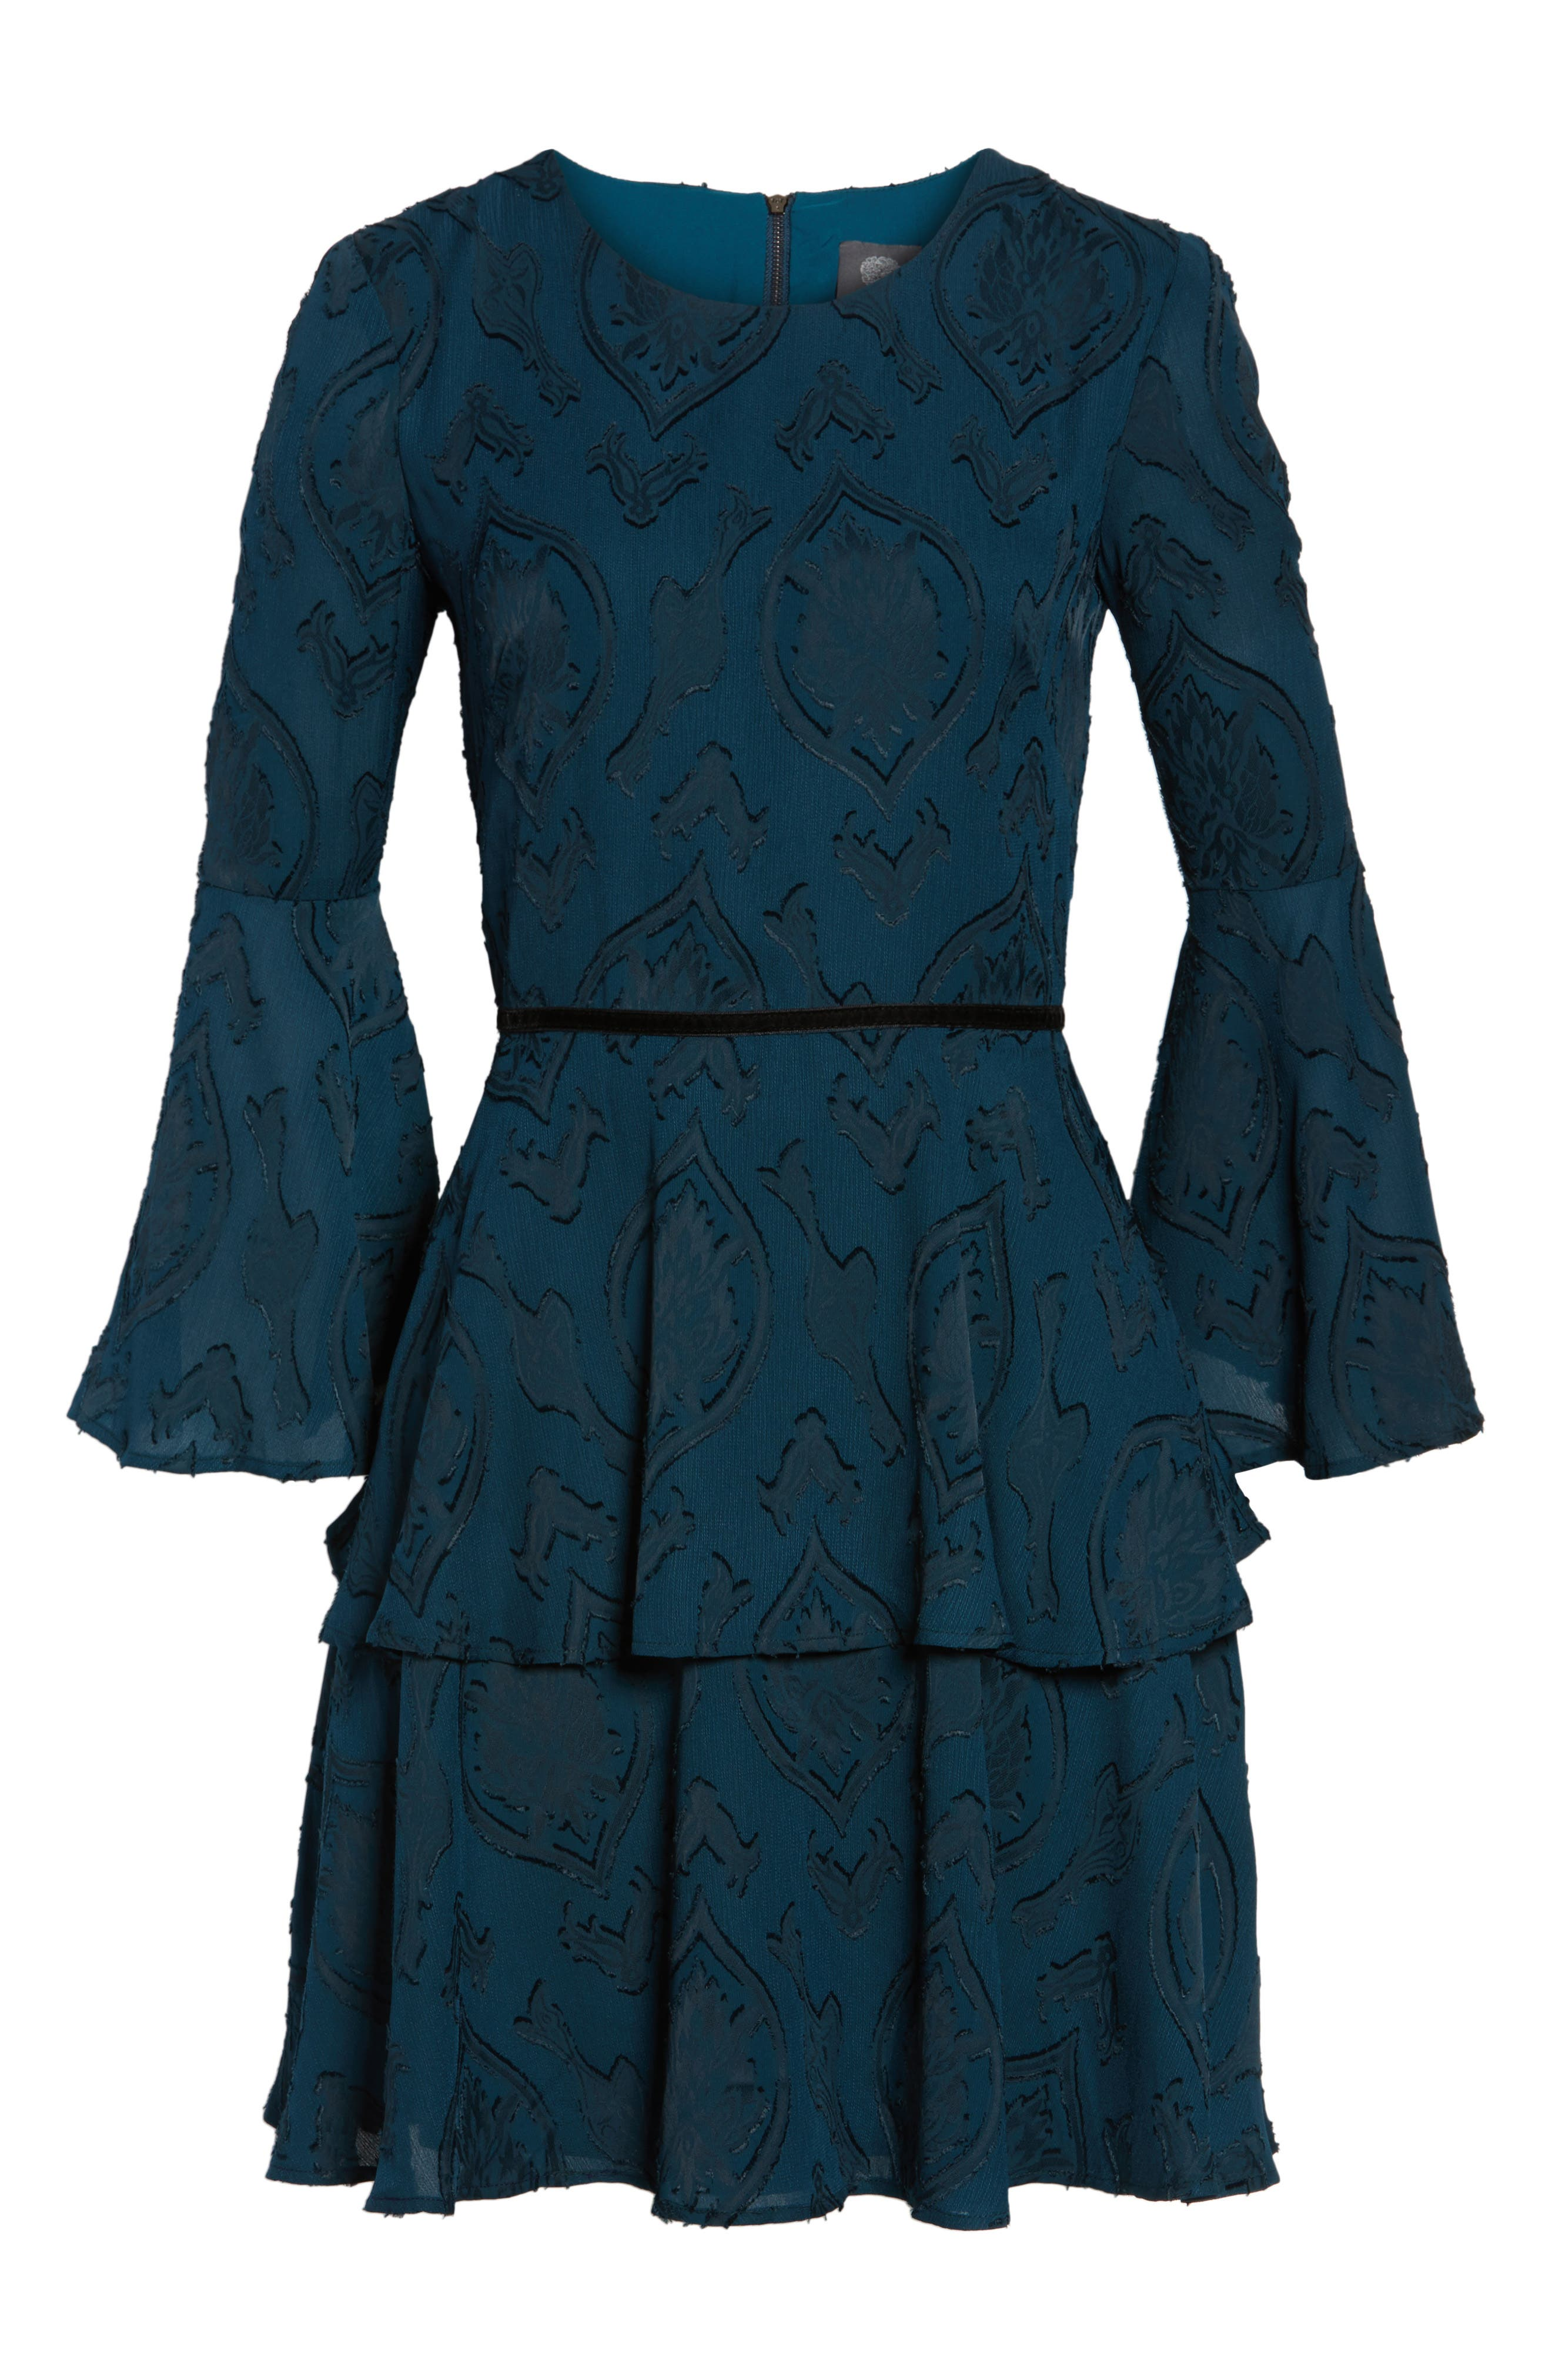 Tiered Chiffon Fit & Flare Dress,                             Alternate thumbnail 6, color,                             Teal/ Black